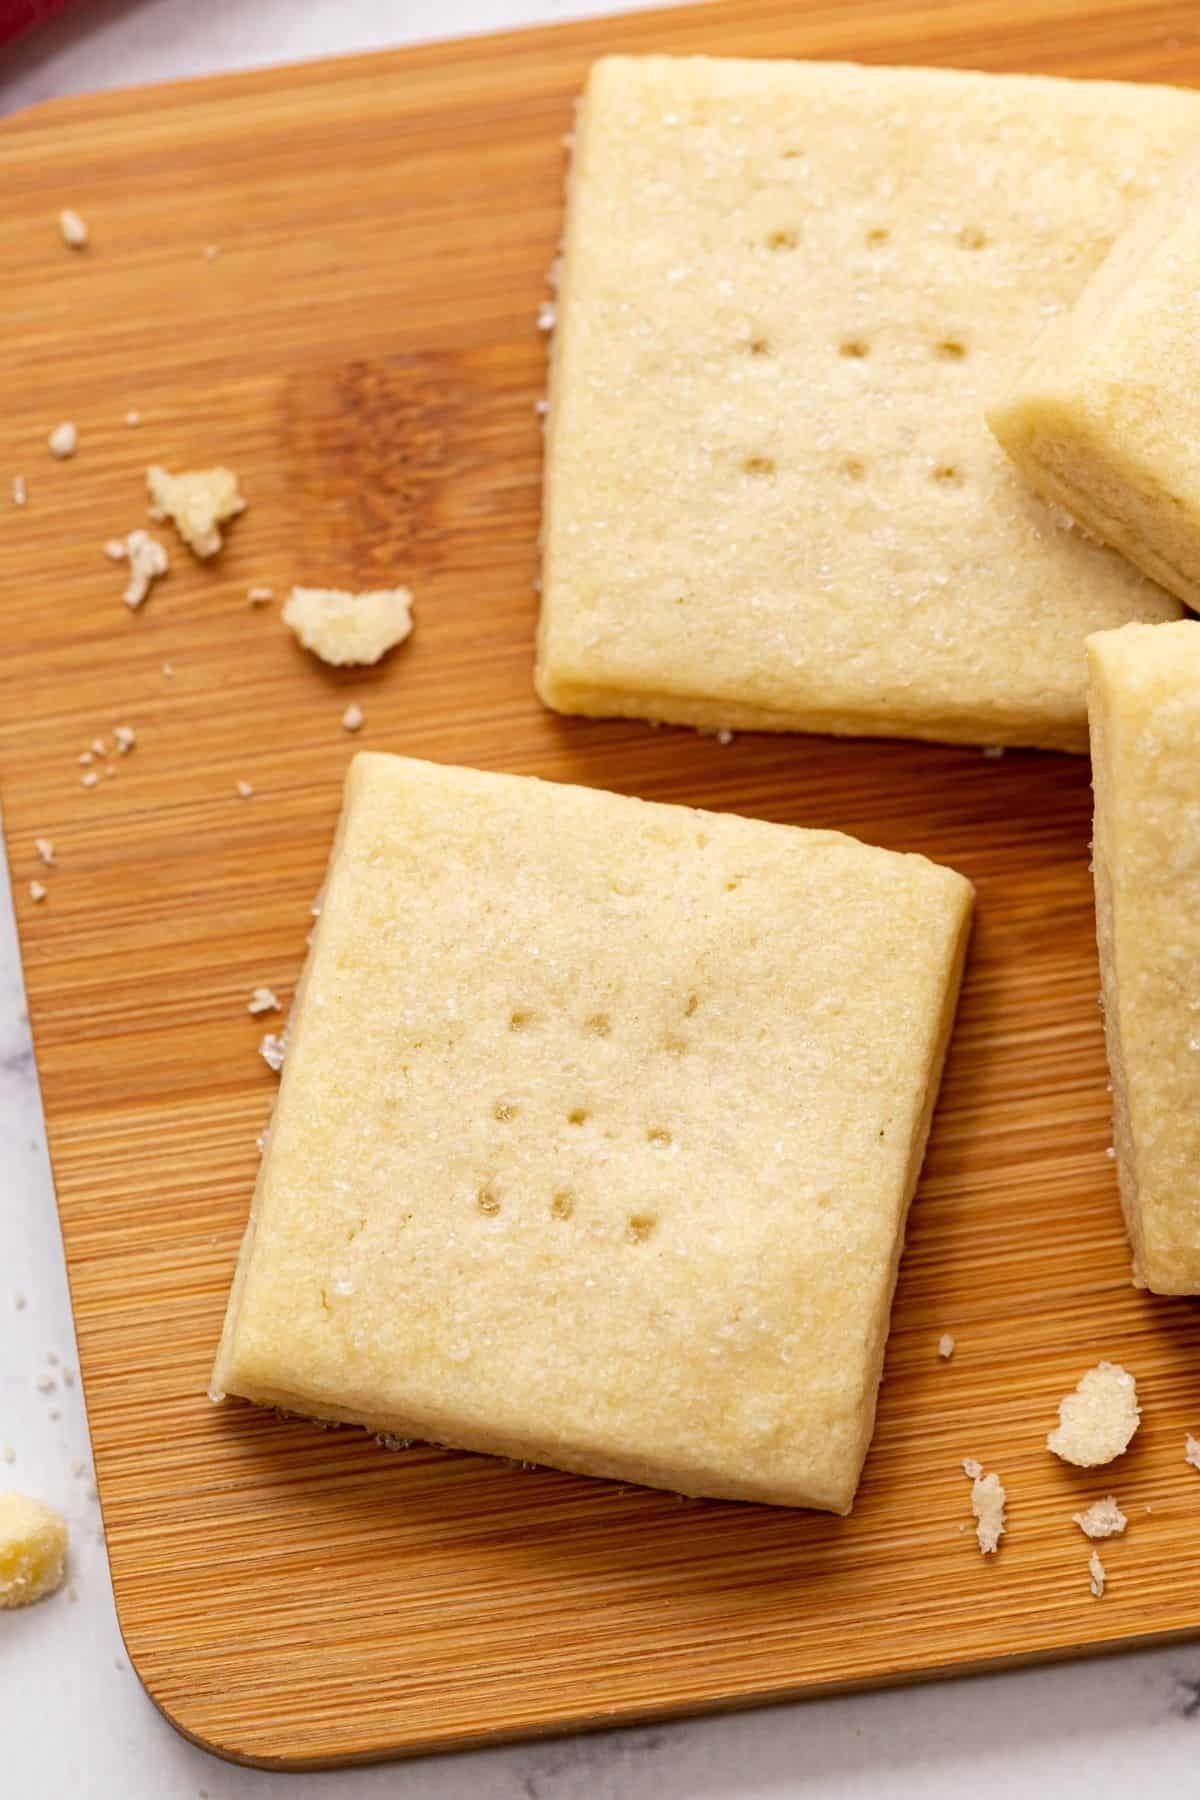 Baked shortbread cookies on cutting board.